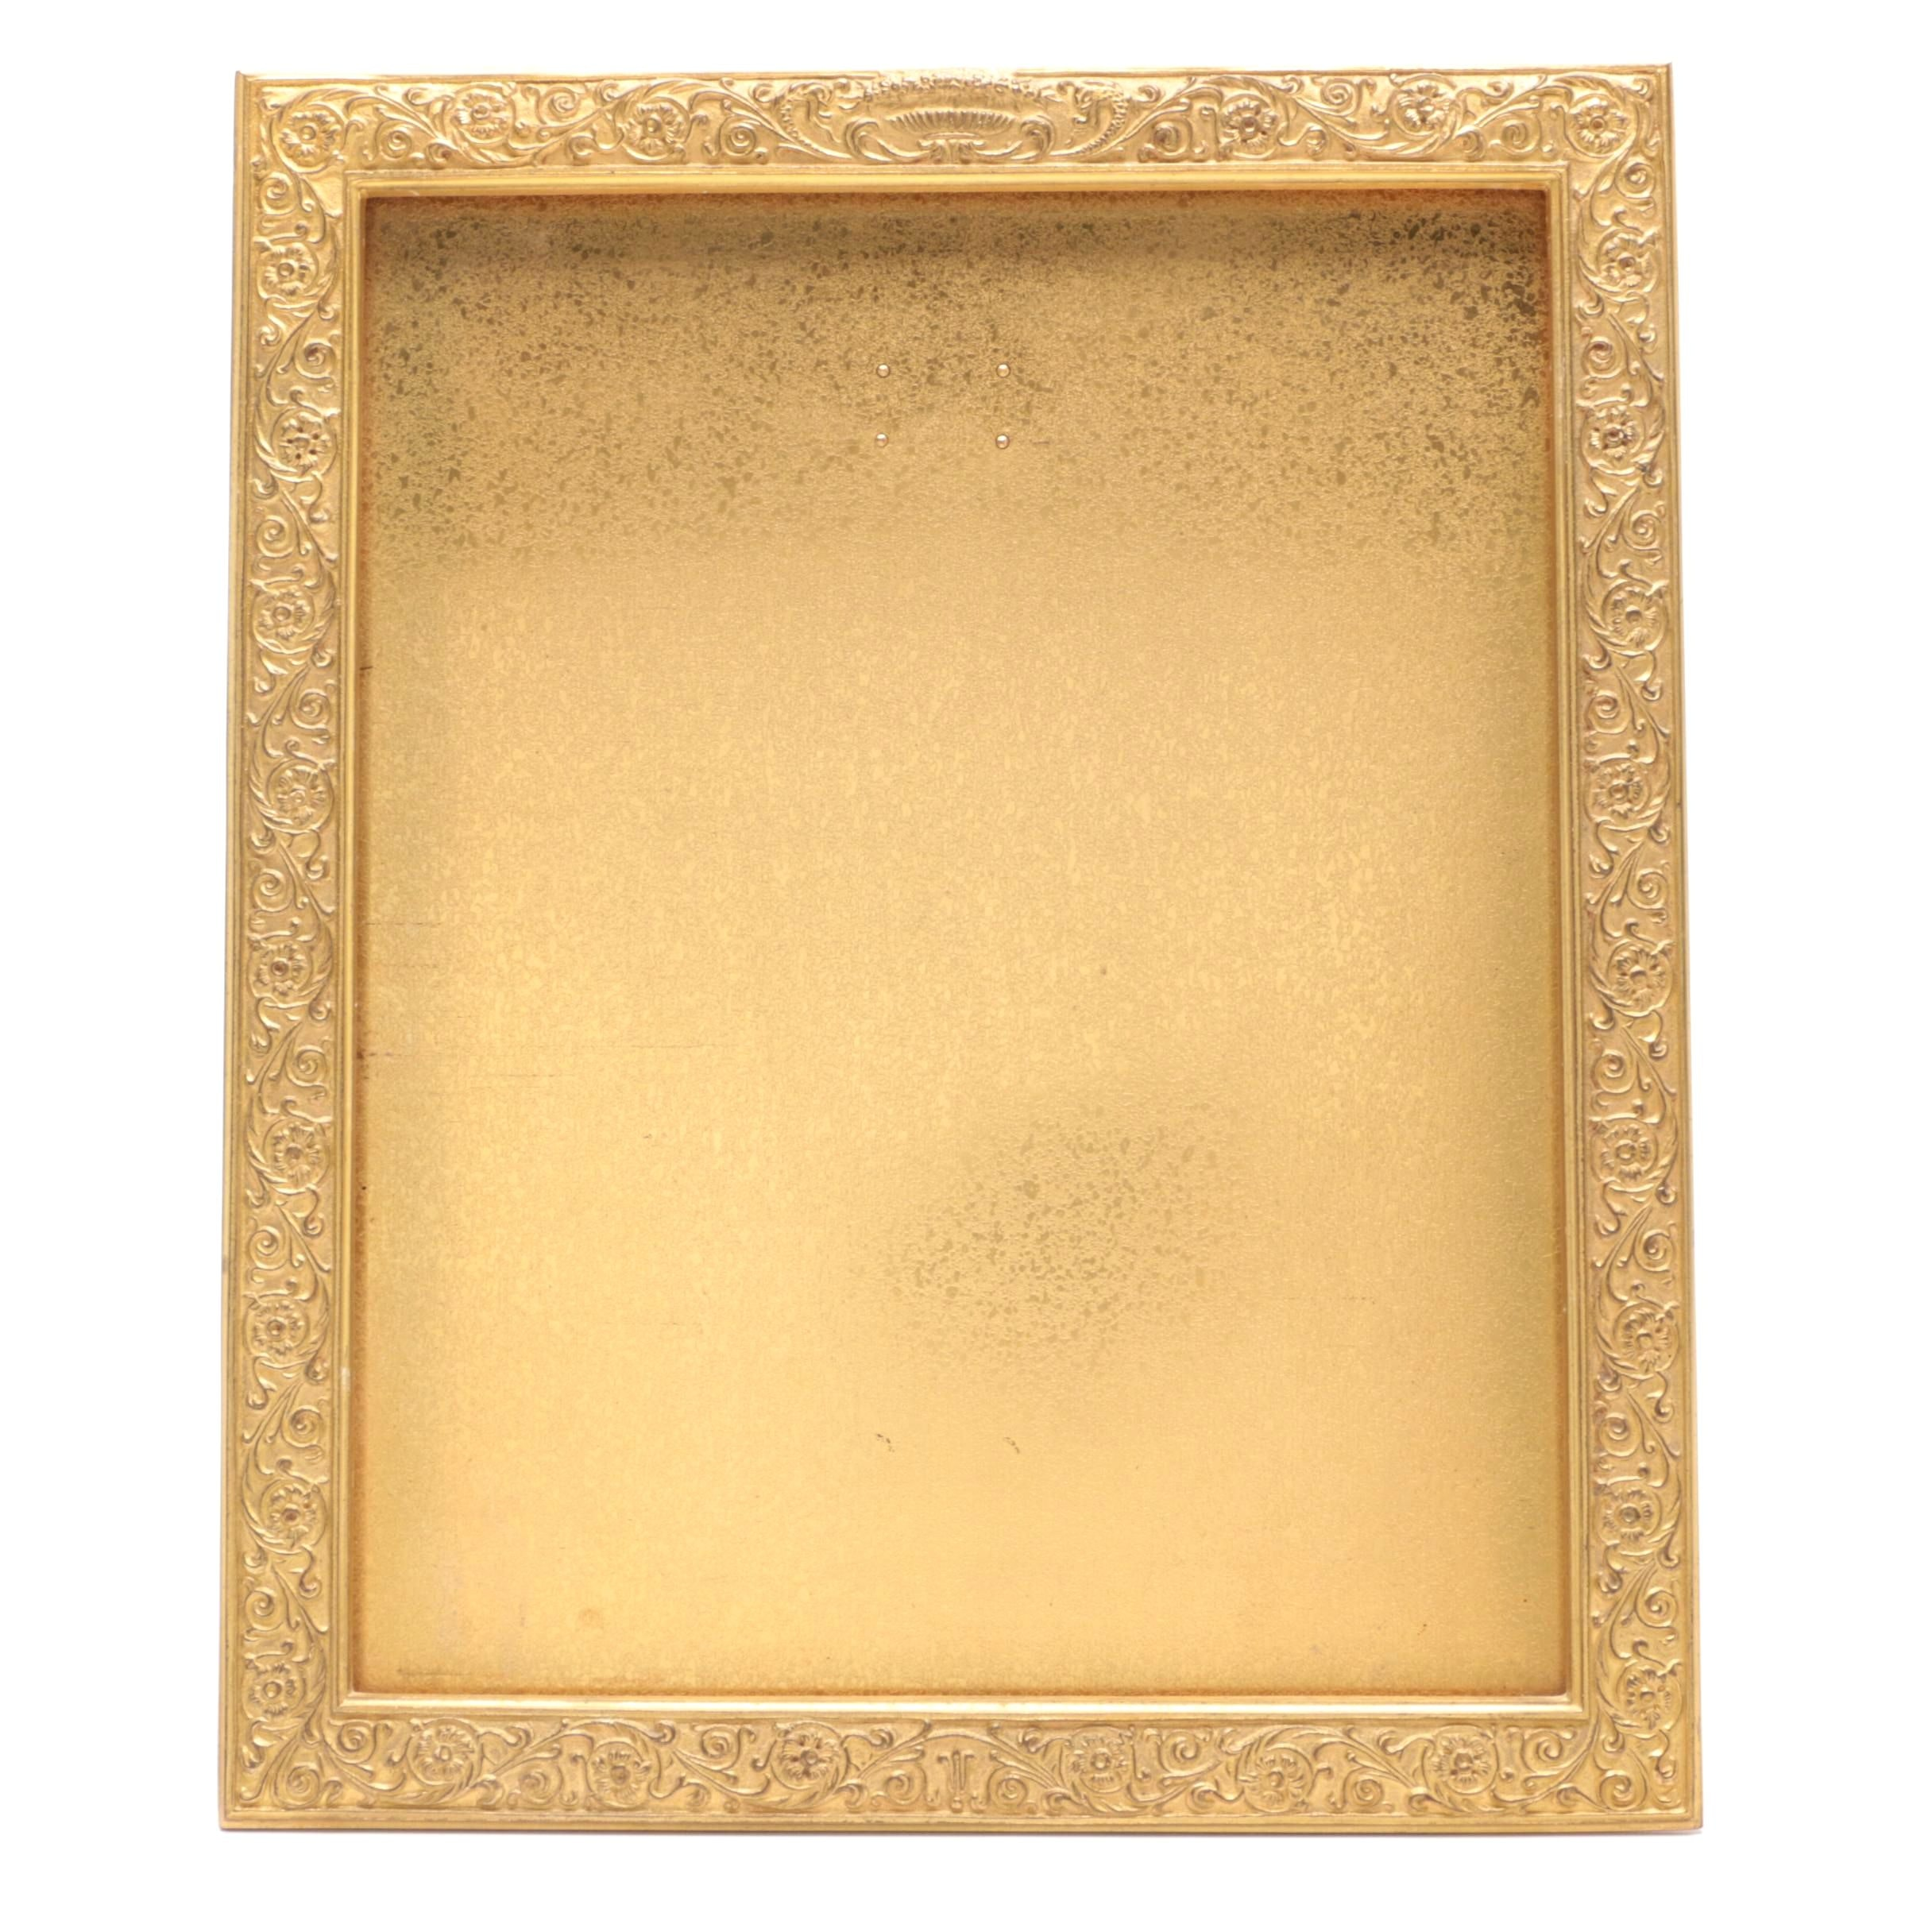 Tiffany Studios Gilt Bronze Table Top Picture Frame